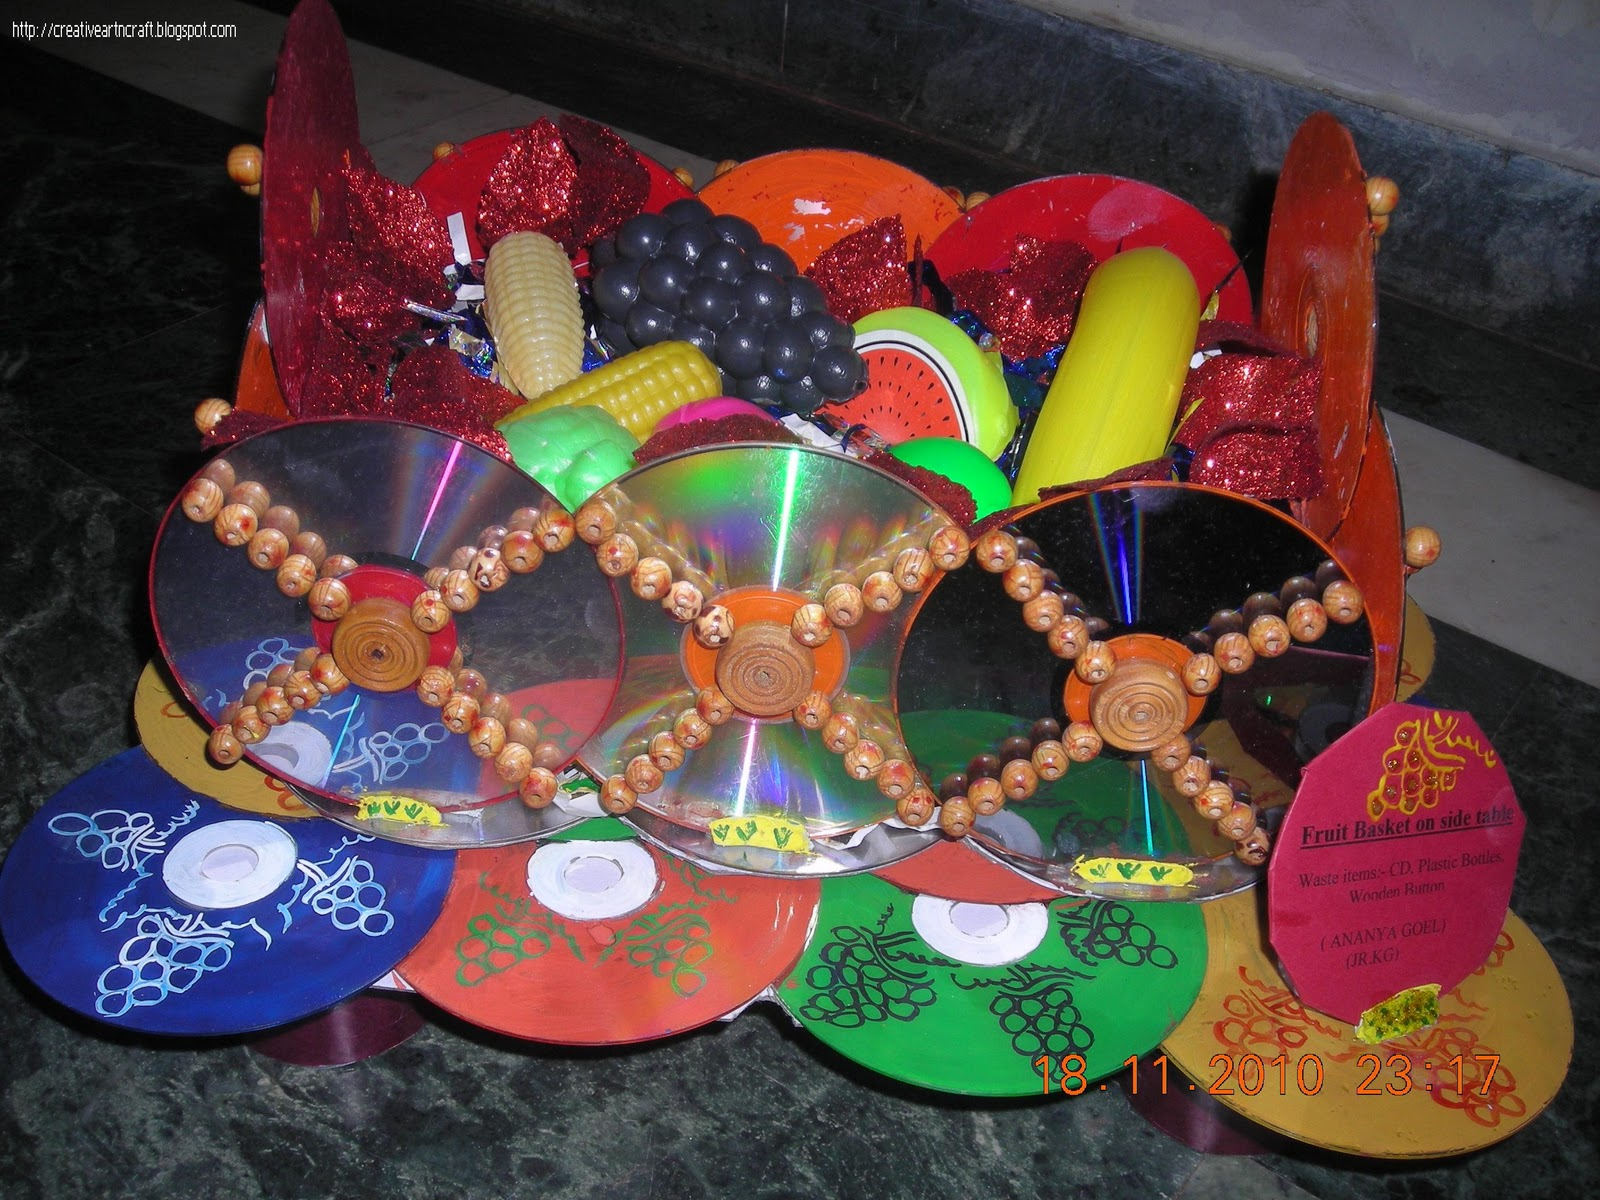 Anu 39 s art and crafts best out of waste fruit basket with for Best of waste material ideas